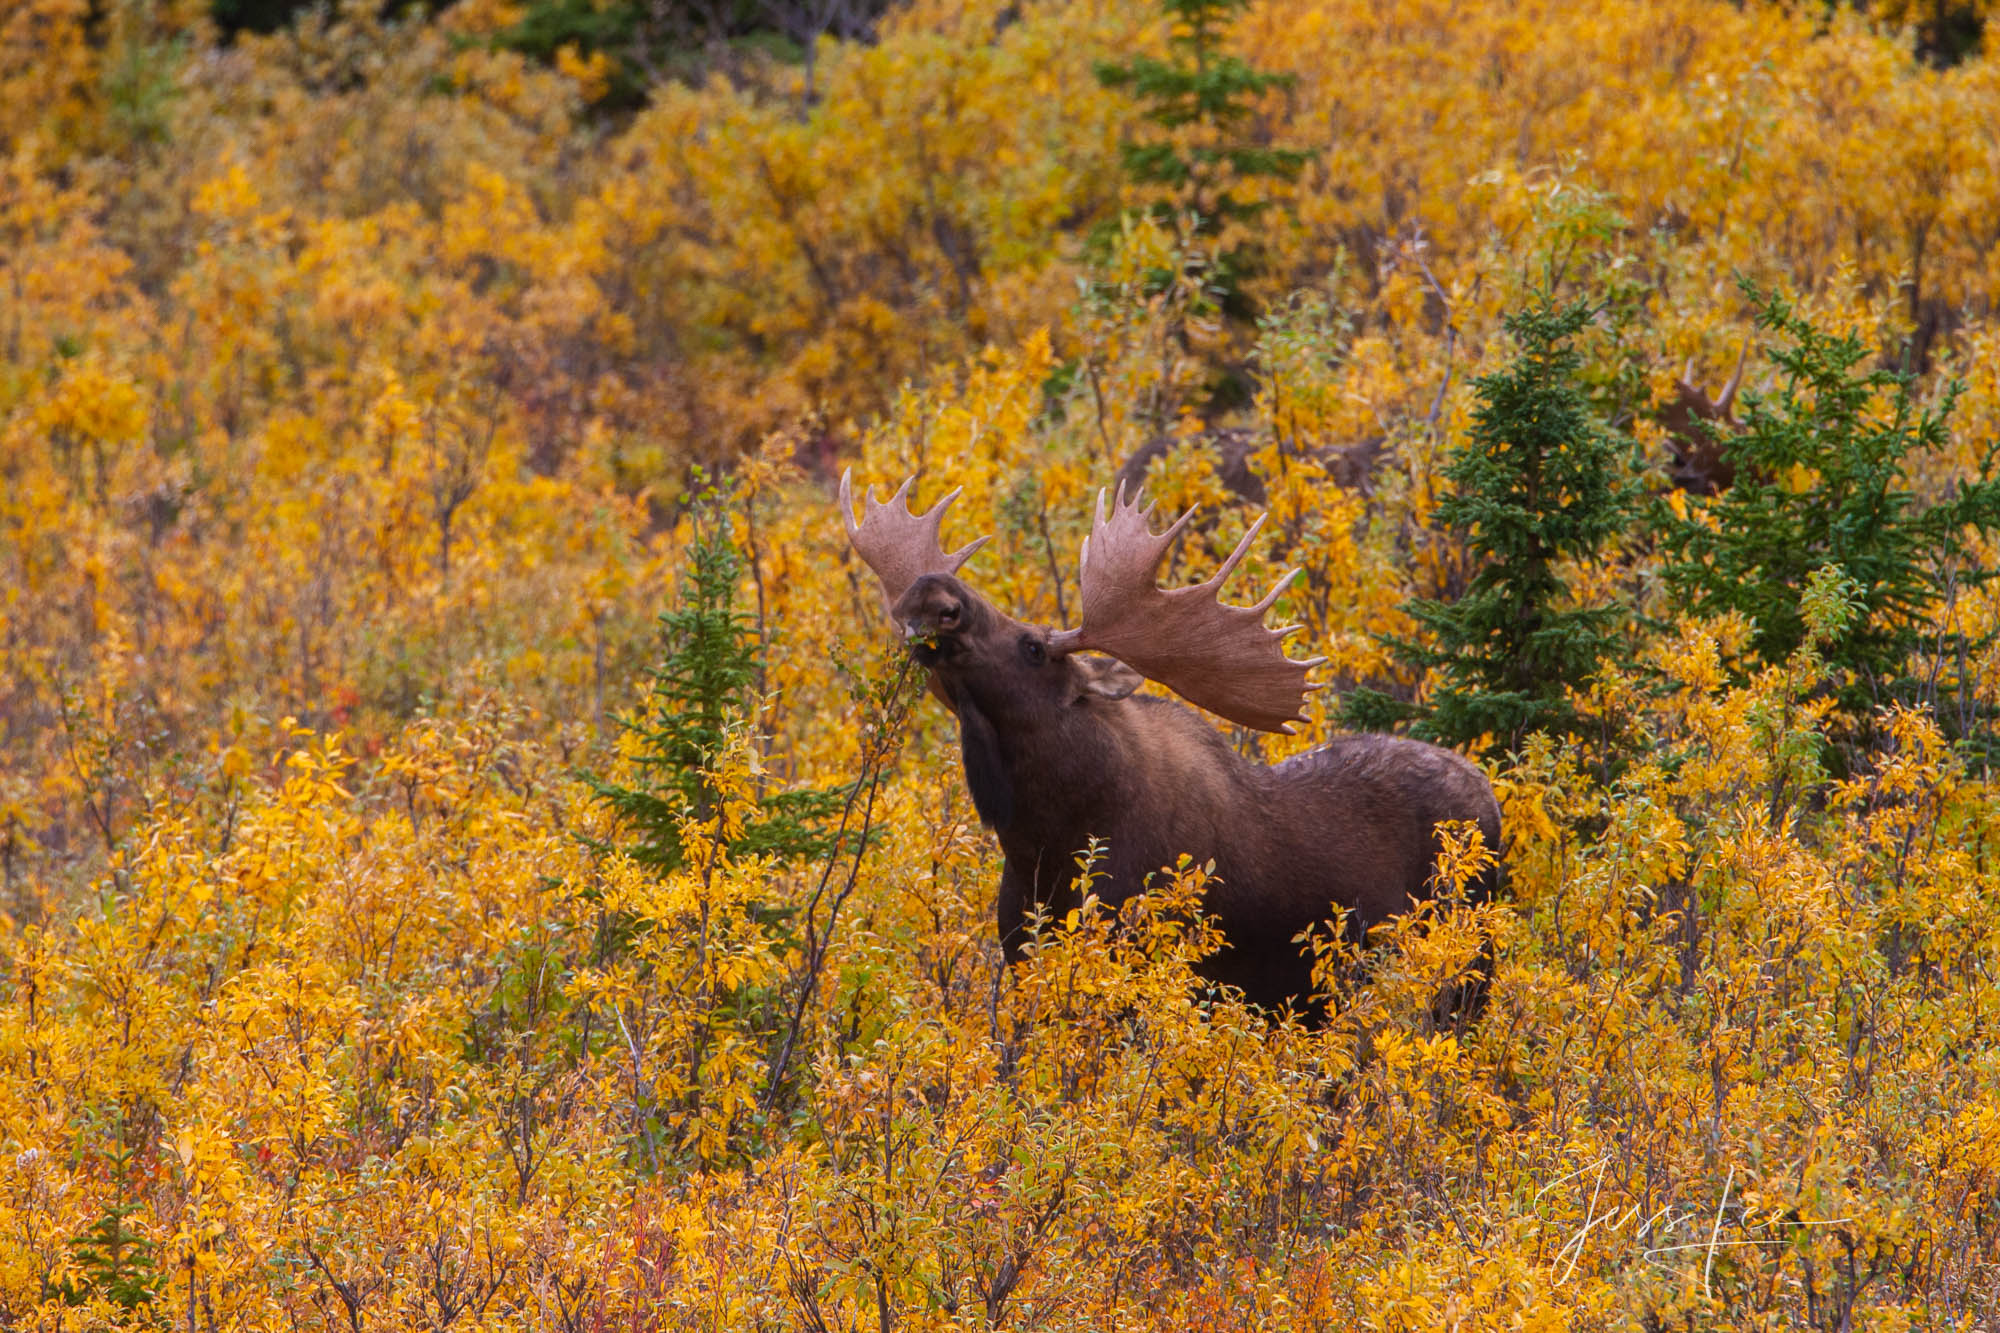 Denali Alaska, bull Moose feeding in the willows. A limited edition of 800 prints. These Moose fine art wildlife photographs...